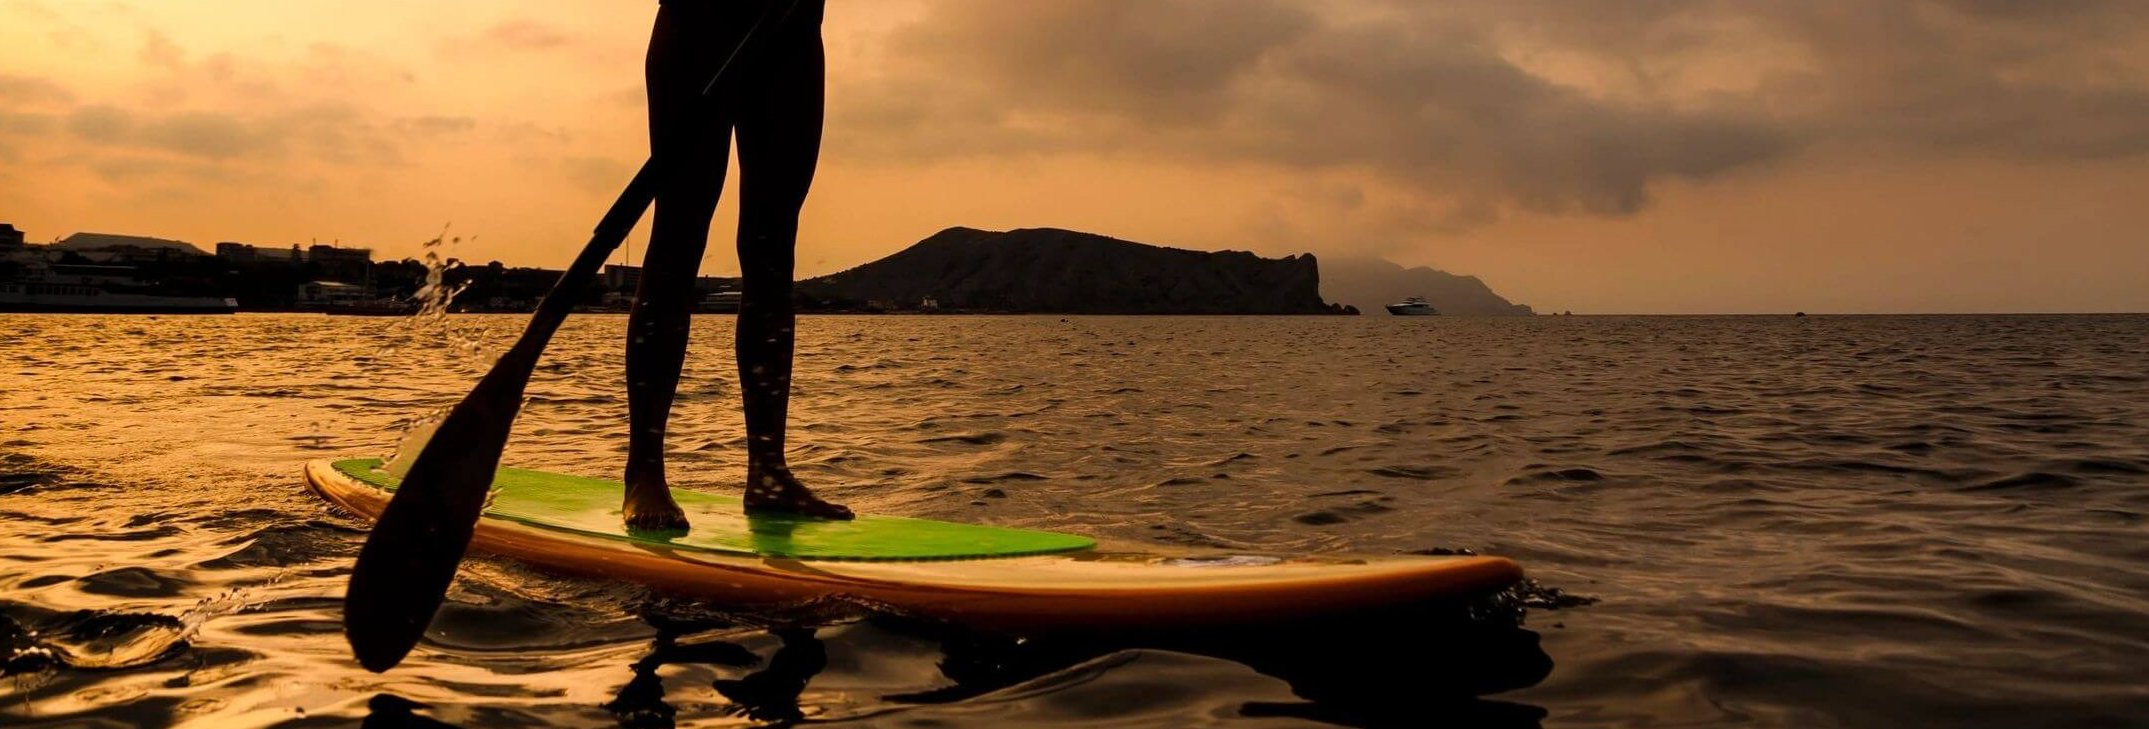 paddle board, anxiety, stress, teens